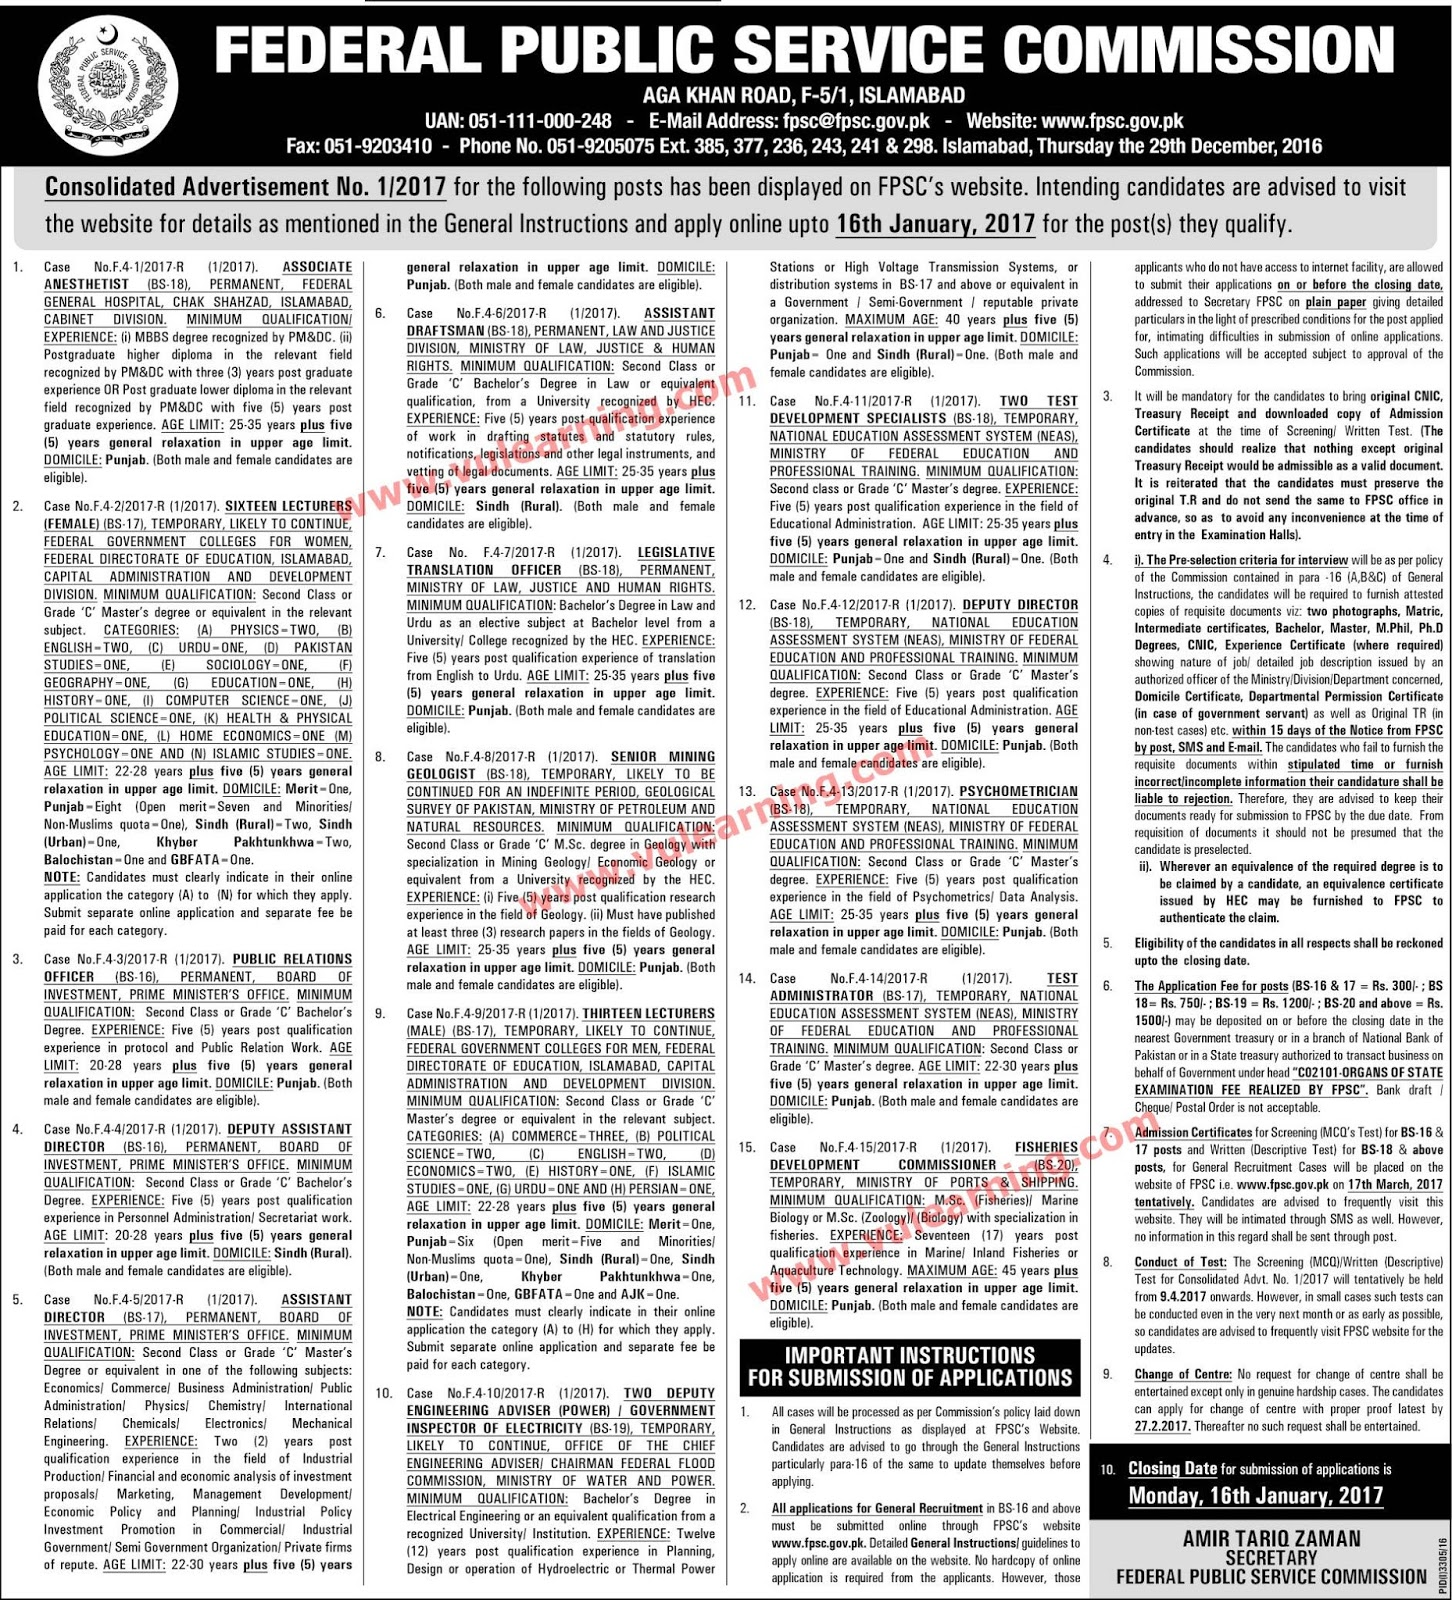 300+ FPSC Lecturers Jobs 2017 Announced in Federal Government